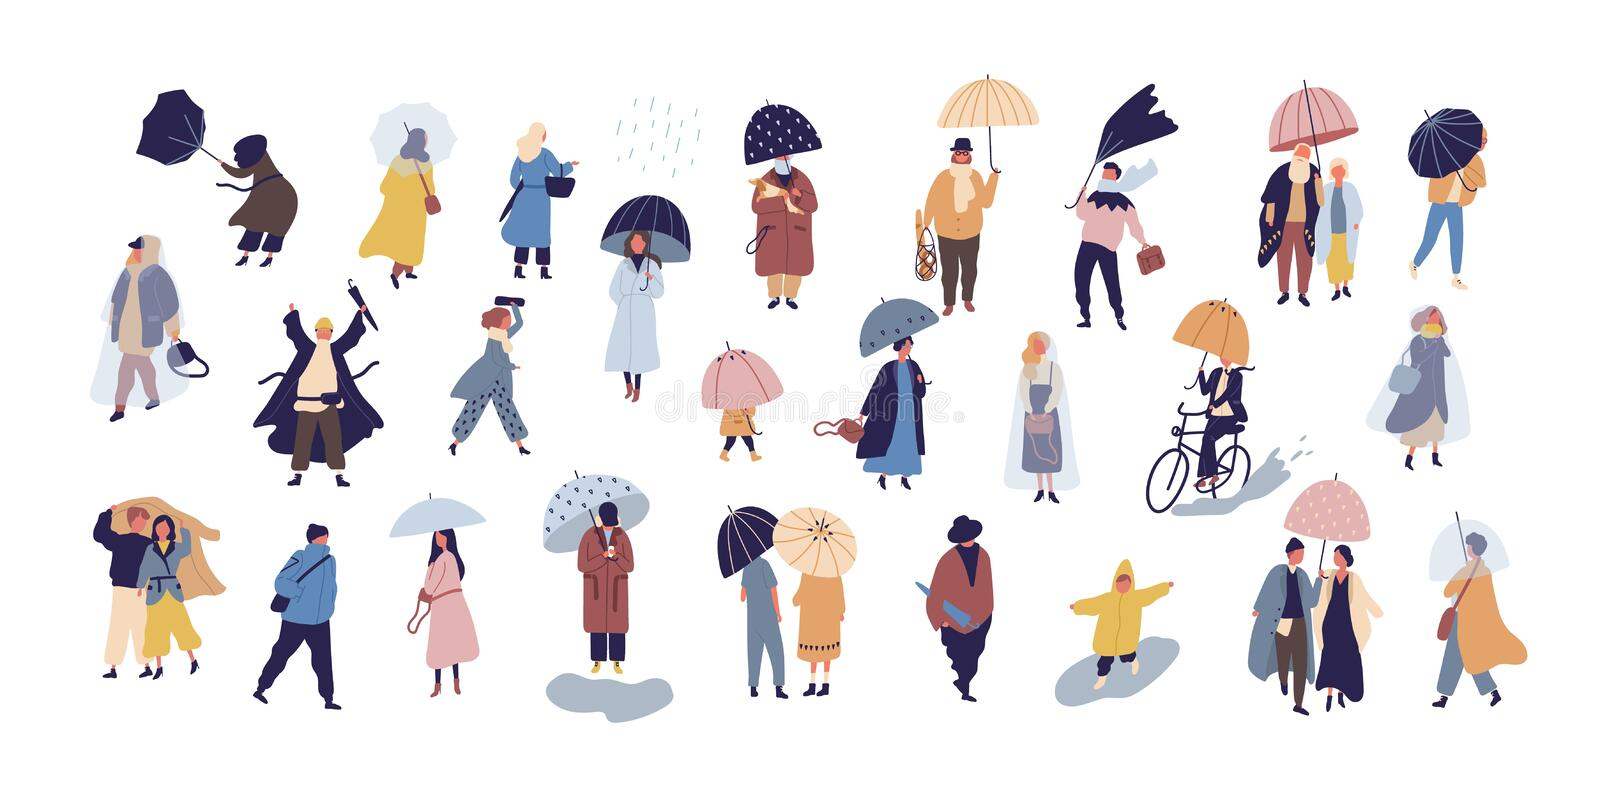 Collection of people walking under umbrella on autumn rainy day isolated on blue background. Crowd of tiny men and women stock illustration